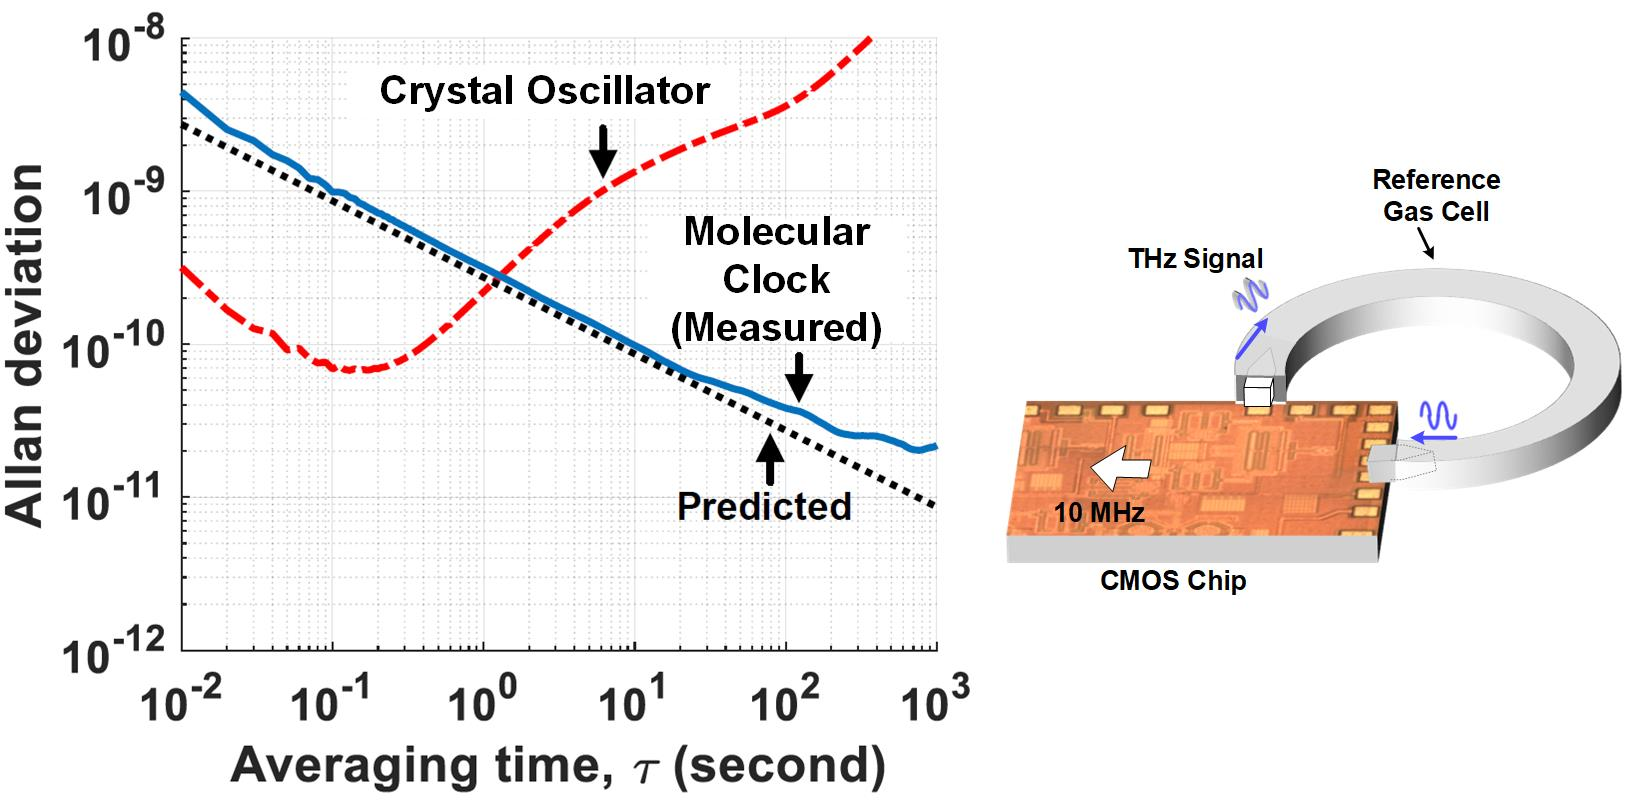 Superurop All Projects Eecs 10 Mhz Variable Frequency Oscillator Signalprocessing Circuit Molecular Clock Ultra Stable Reference On A Cmos Chip